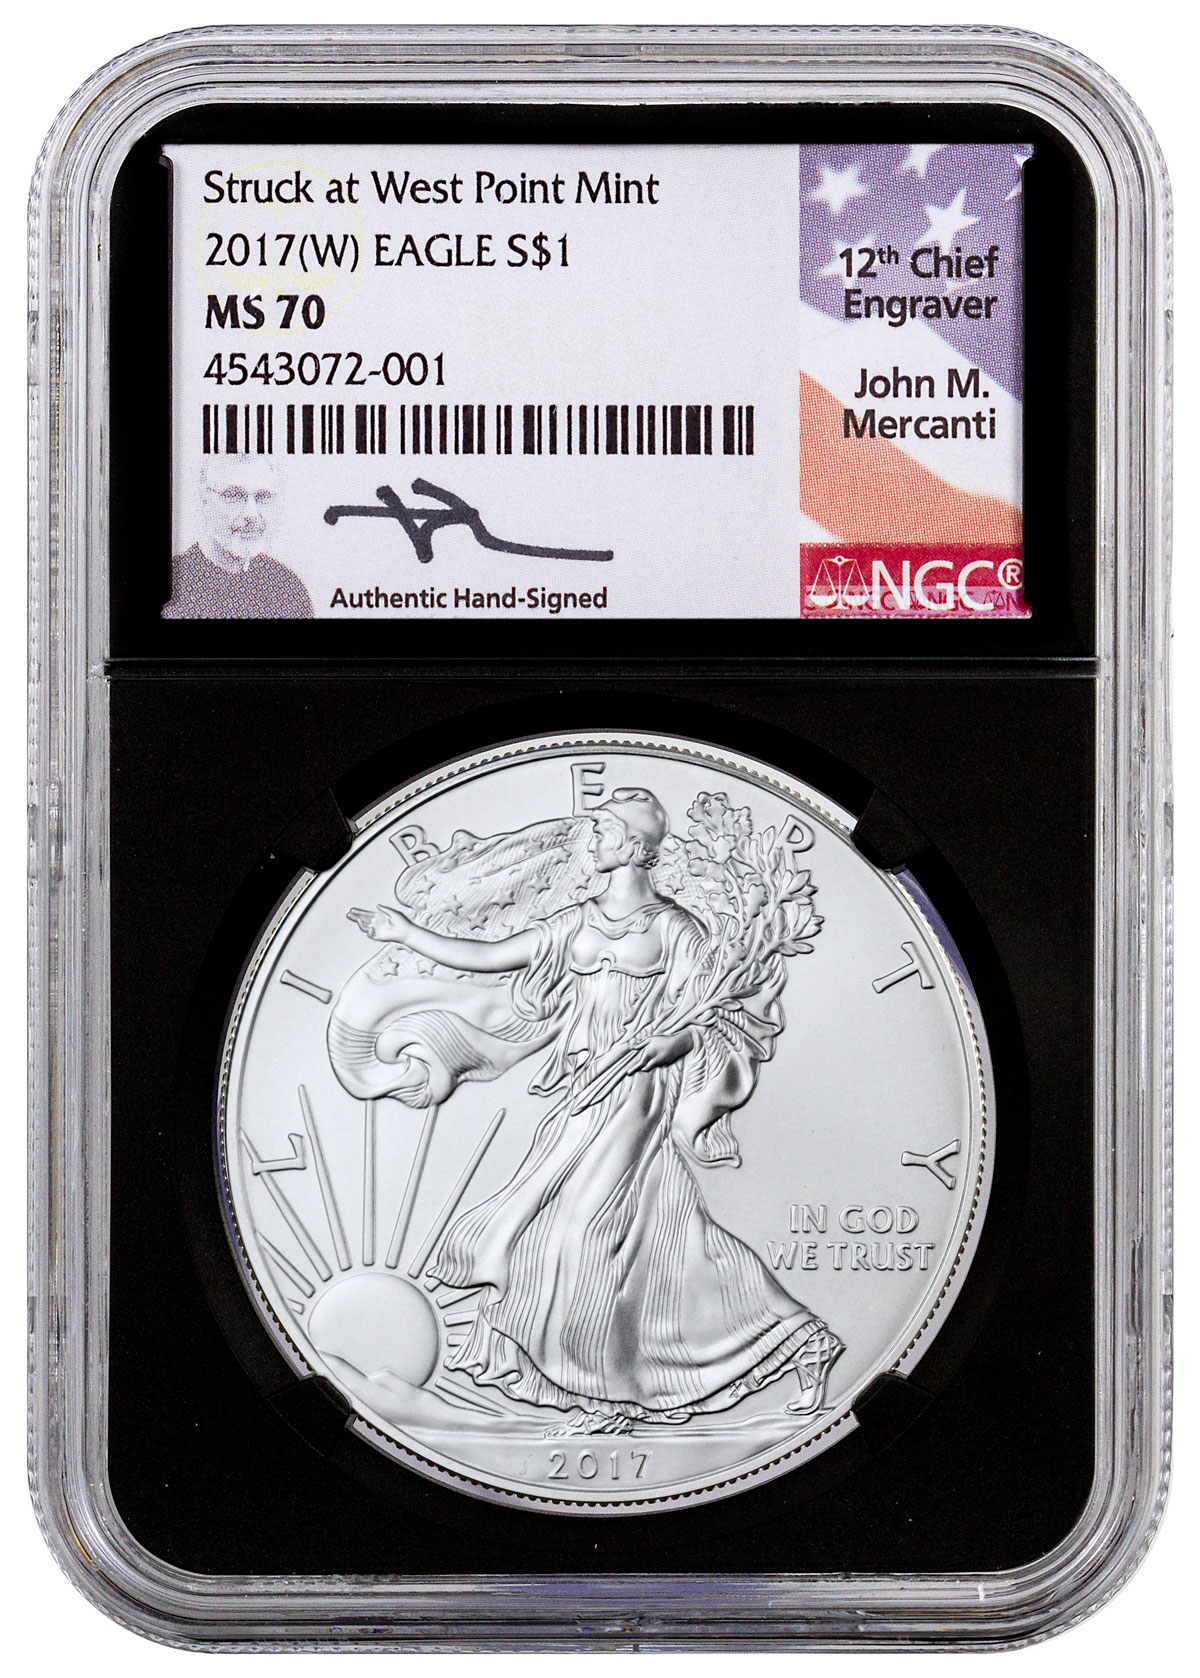 2017-(W) Silver Eagle Struck at West Point NGC MS70 Black Core Holder Mercanti Signed Label